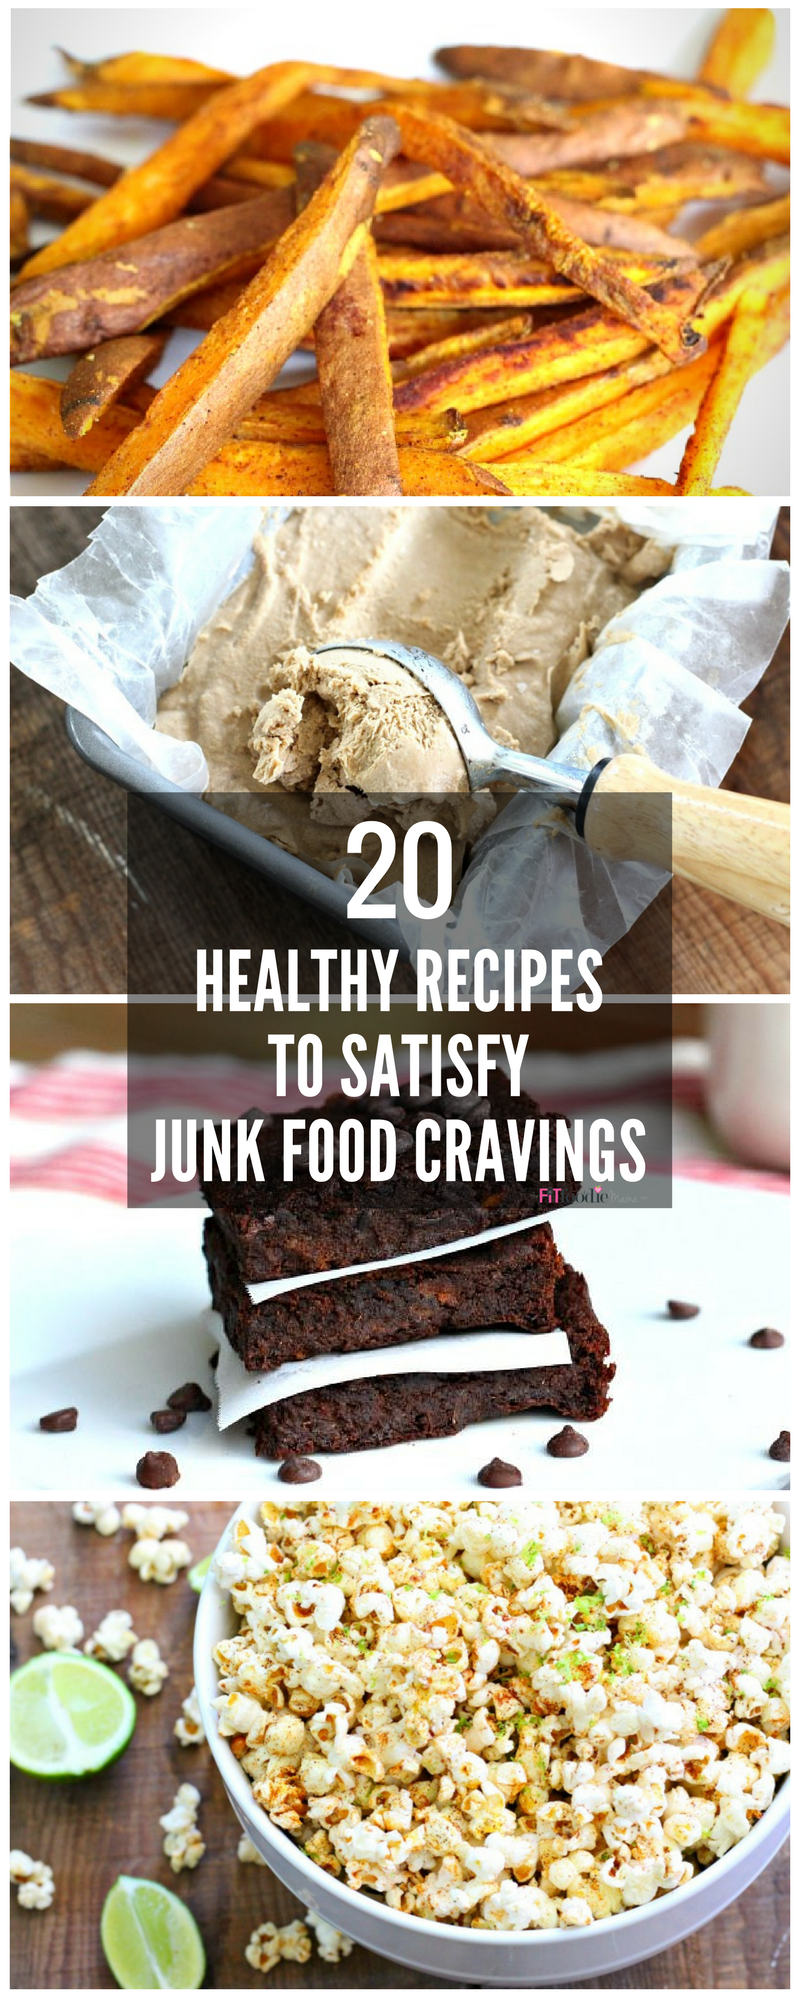 20 healthy recipes to satisfy junk food cravings postres 20 healthy gluten free and dairy free healthy recipes to satisfy your junk food cravings forumfinder Images